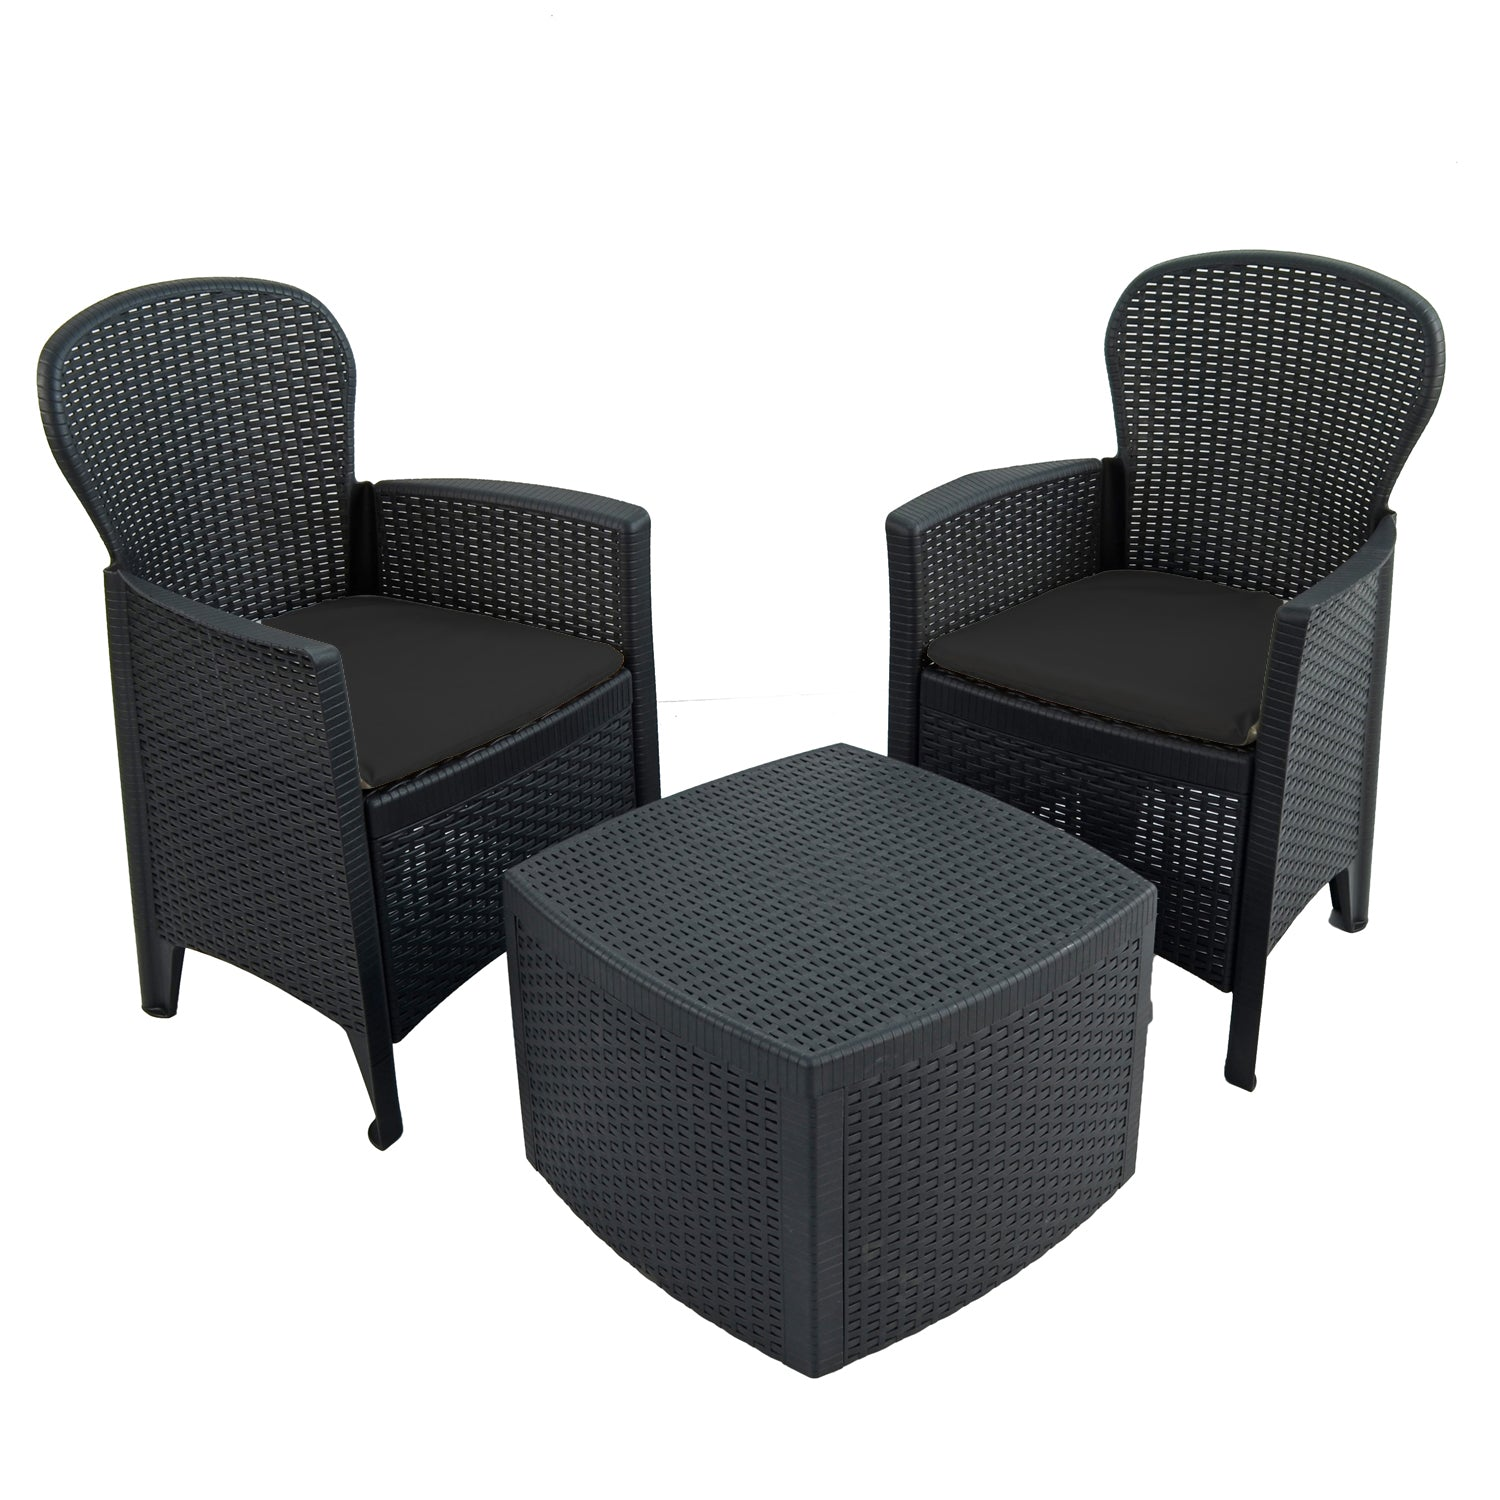 Trabella Sicily Side Table with 2 Sicily Chairs Set Anthracite - Ruby's Garden Boutique